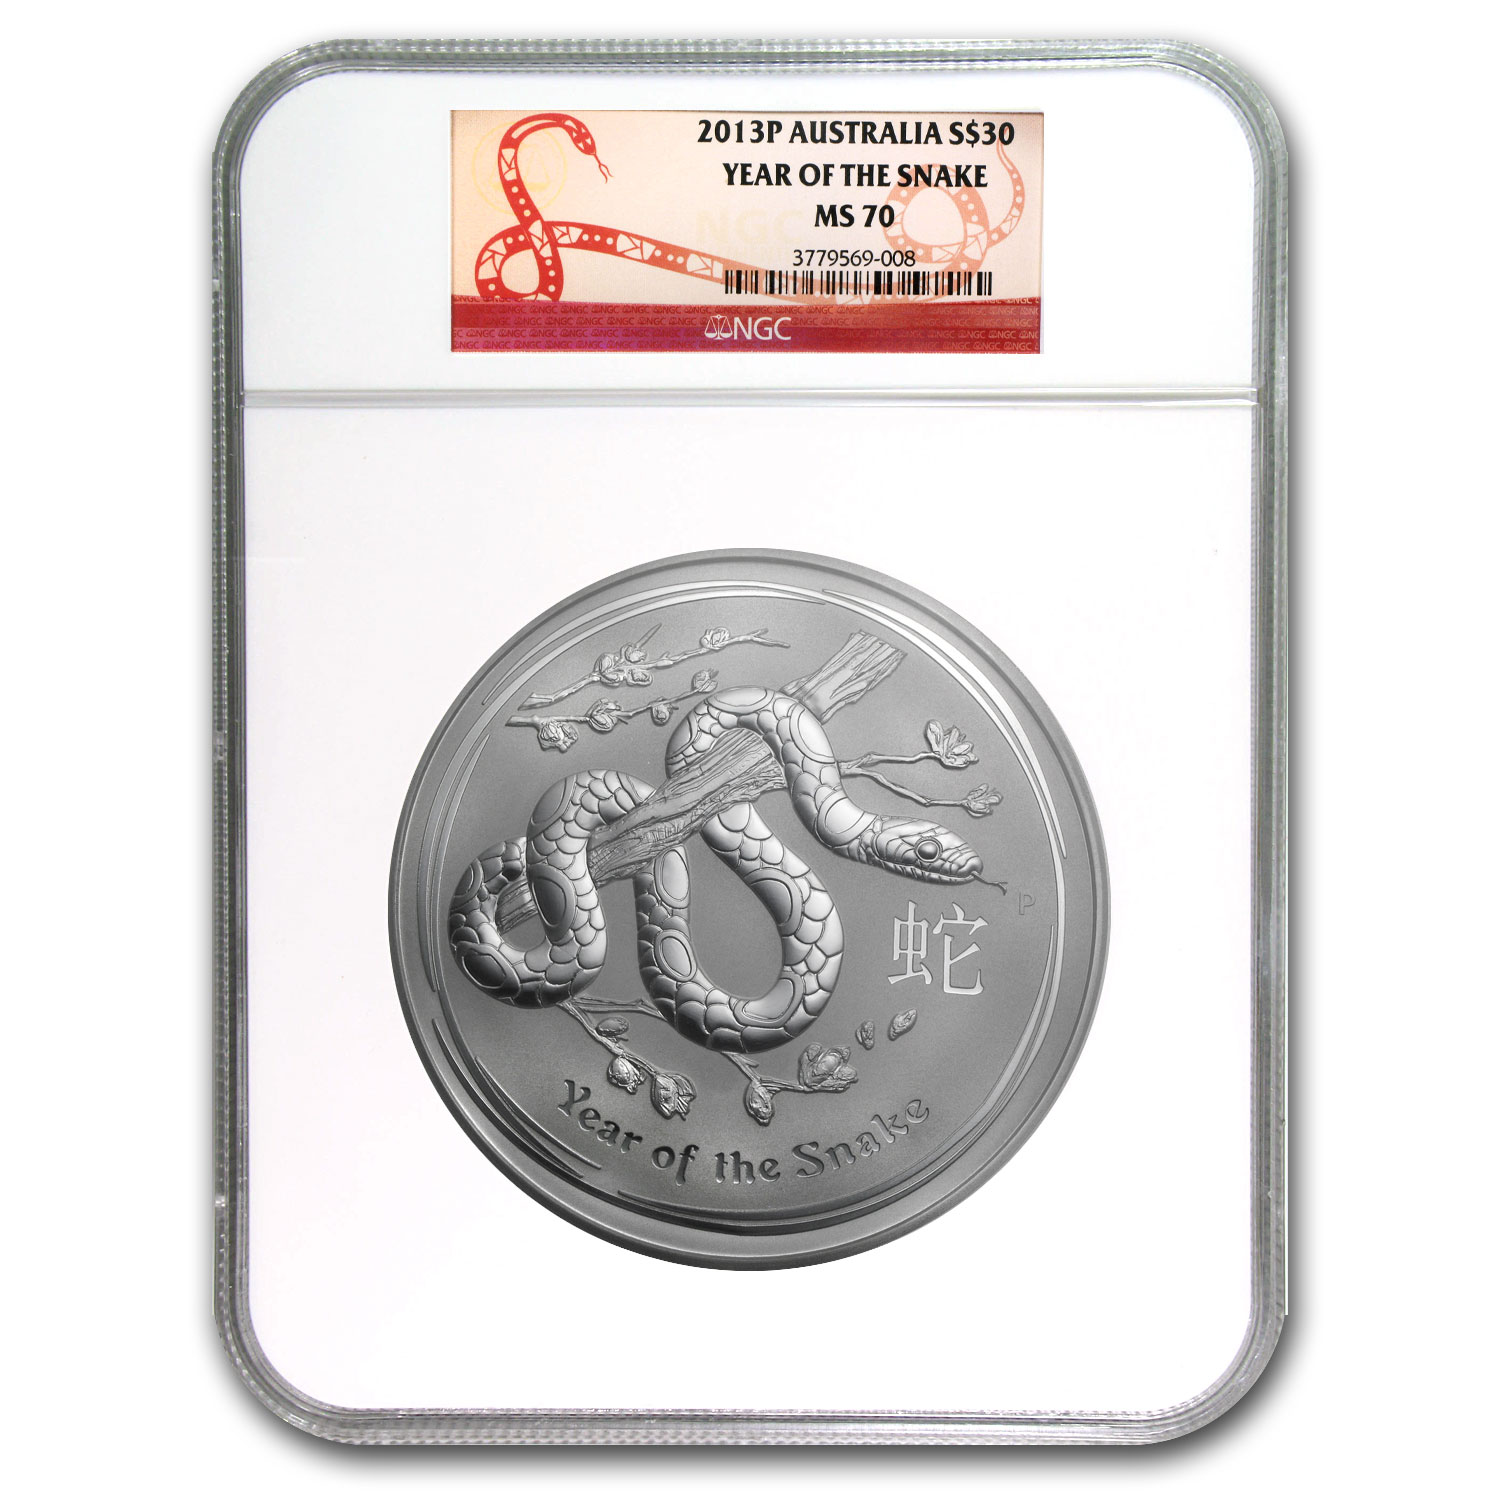 2013 Australia 1 kilo Silver Year of the Snake MS-70 NGC